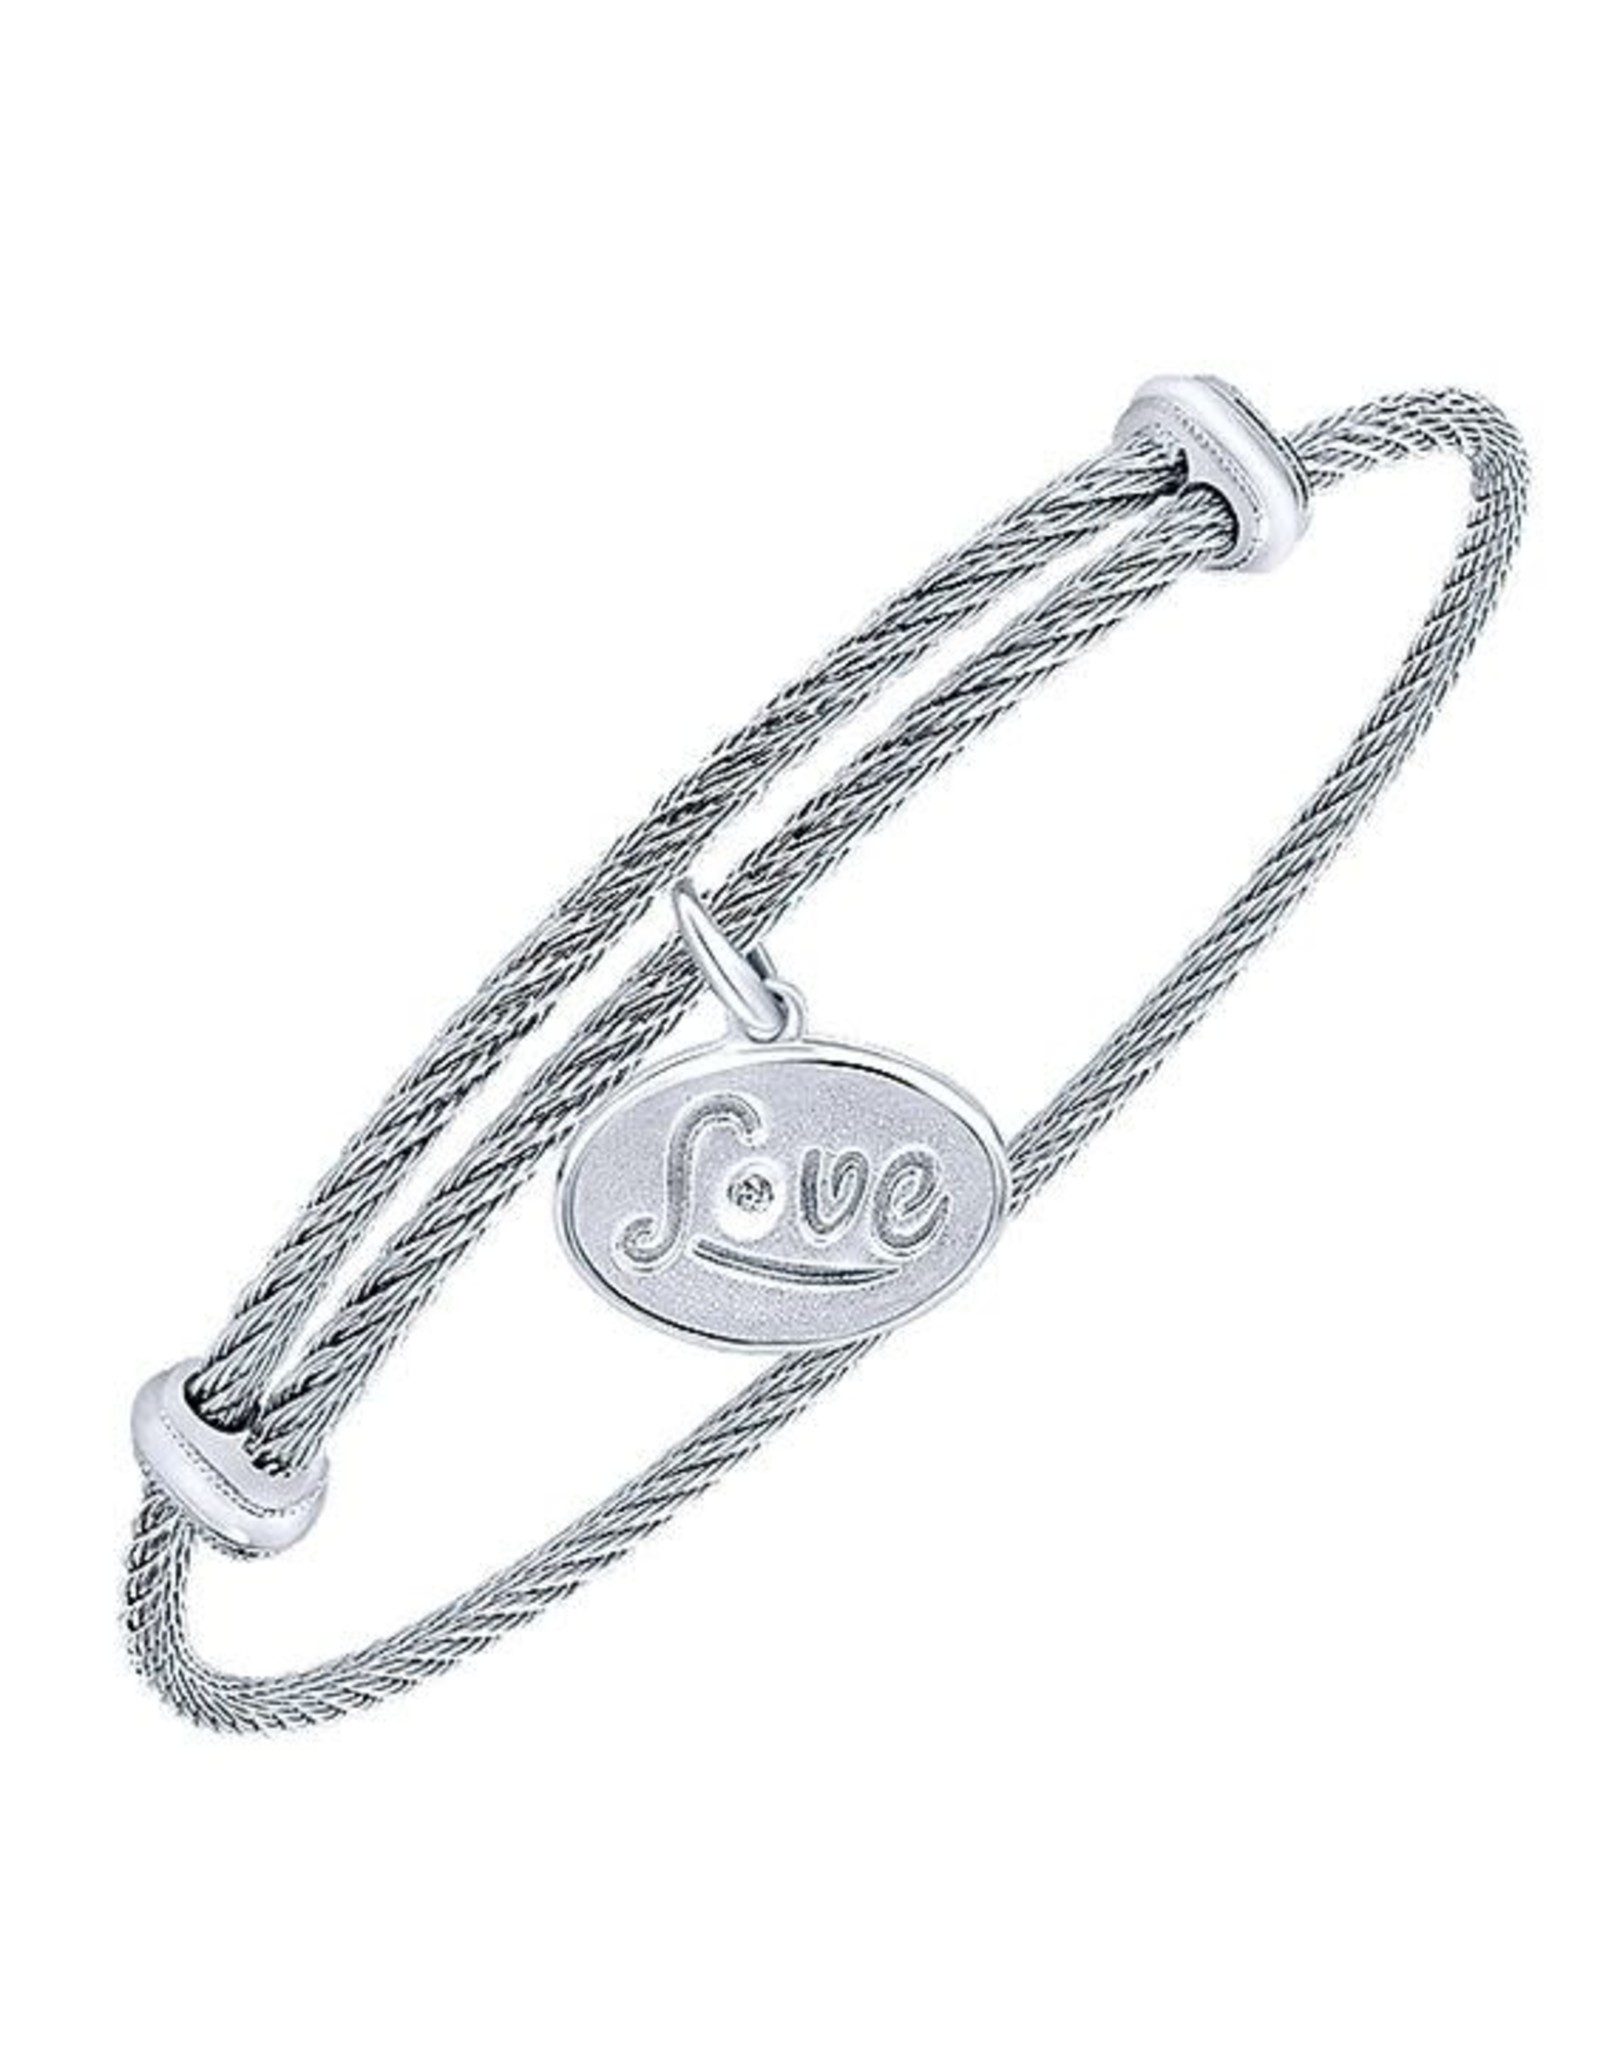 Adjustable Twisted Cable Stainless Steel Bangle Bracelet with Sterling Silver Diamond LOVE Charm, D: 0.01cts